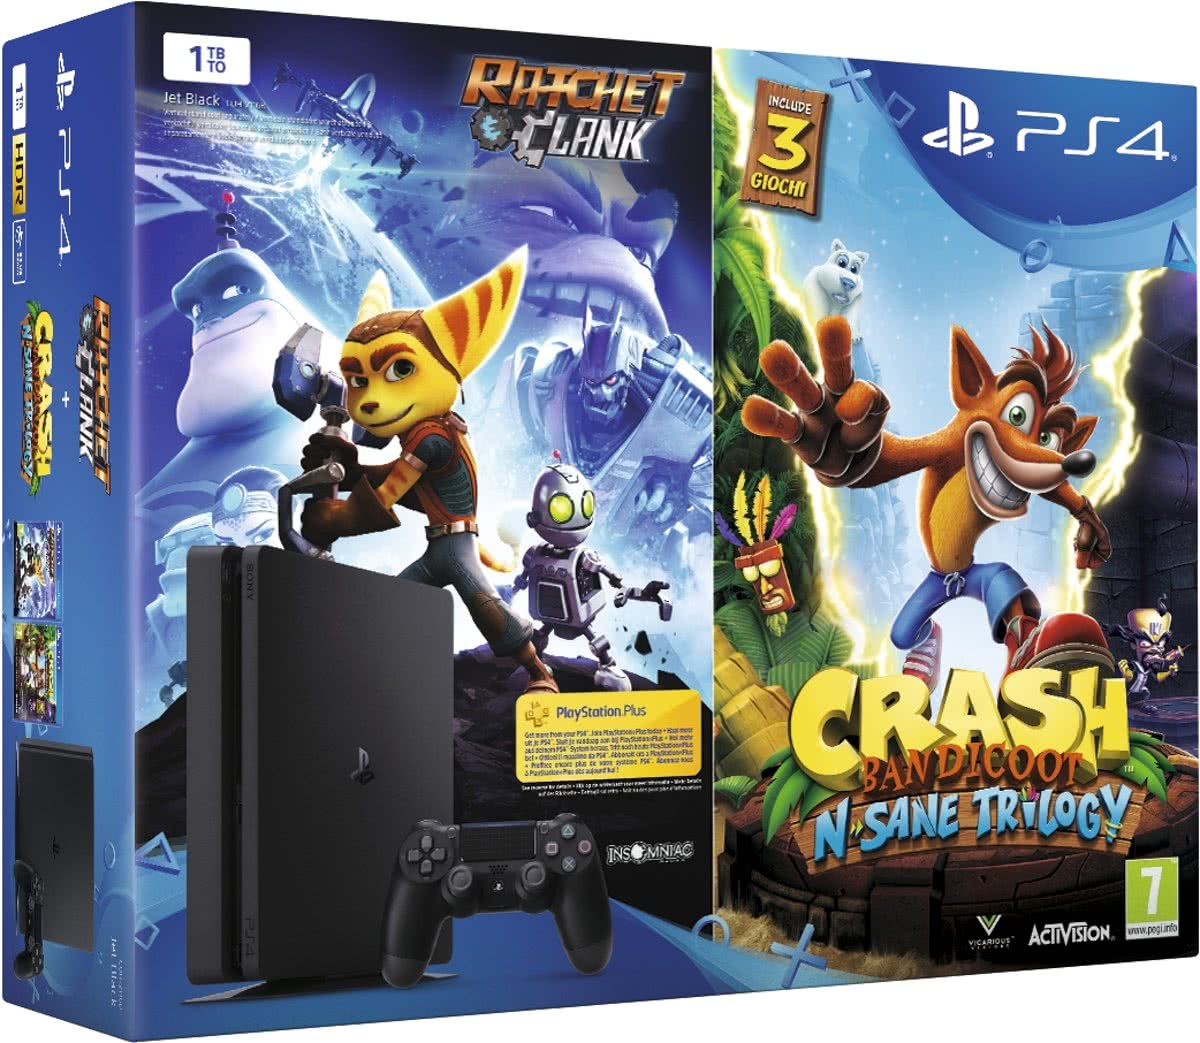 Sony PS4 1TB + Ratchet & Clank + Crash Bandicoot: NSane Trilogy 1000GB Wi-Fi Zwart